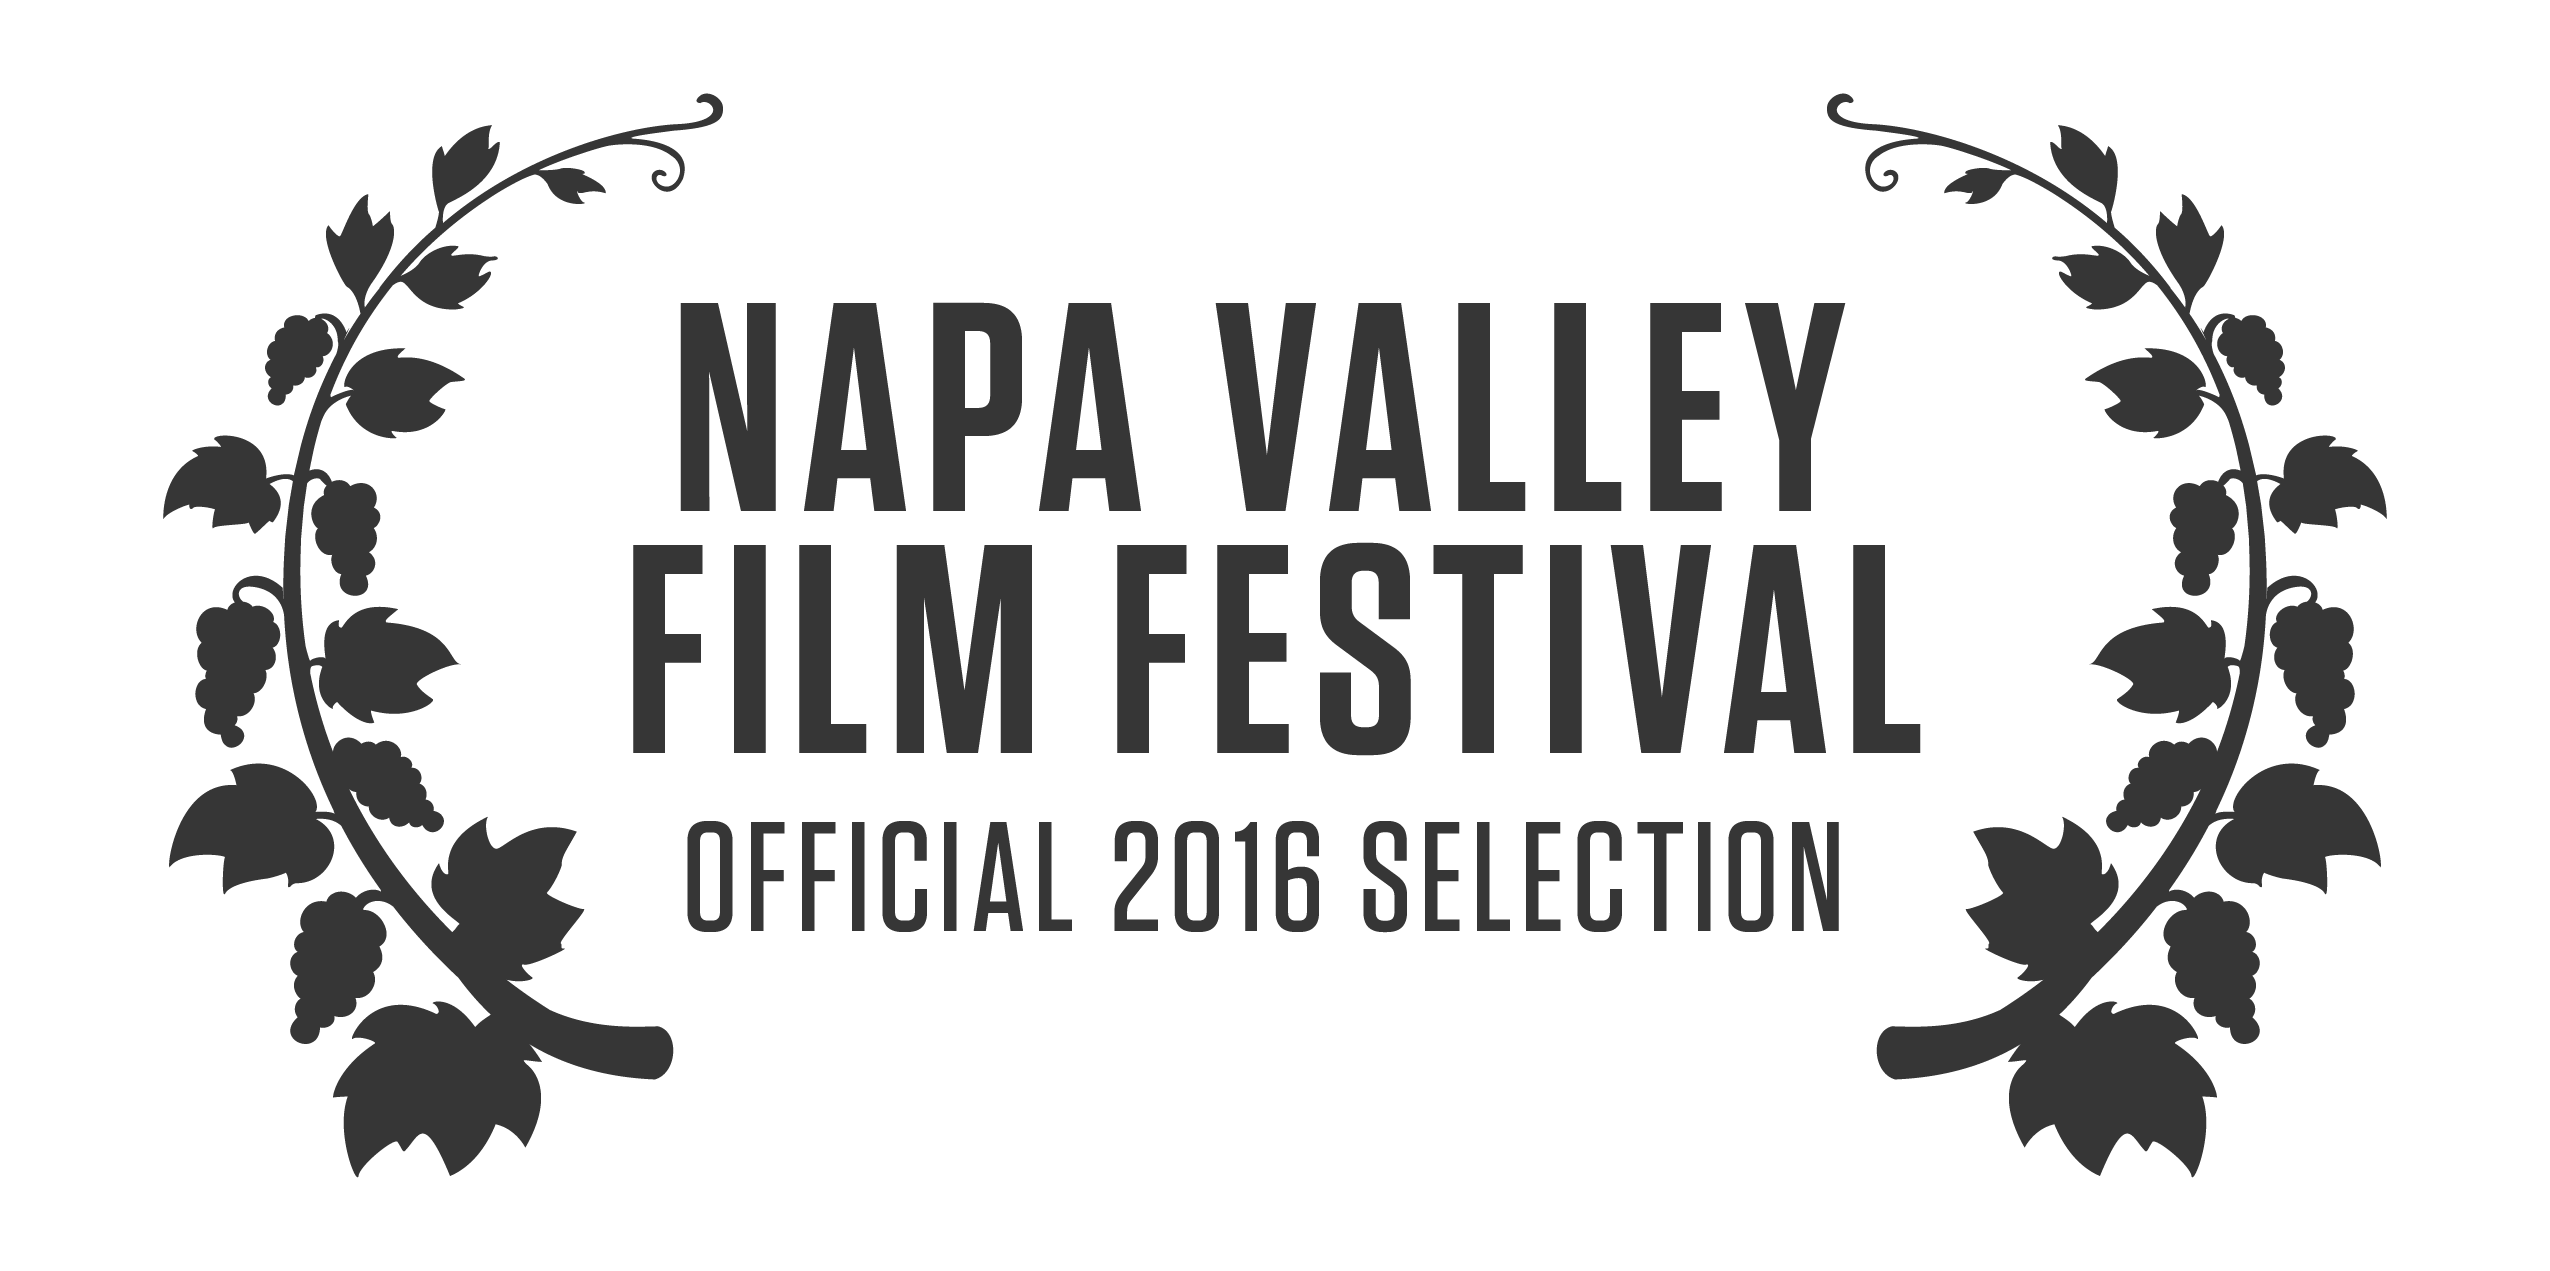 NVFF2016_Official Selection_black